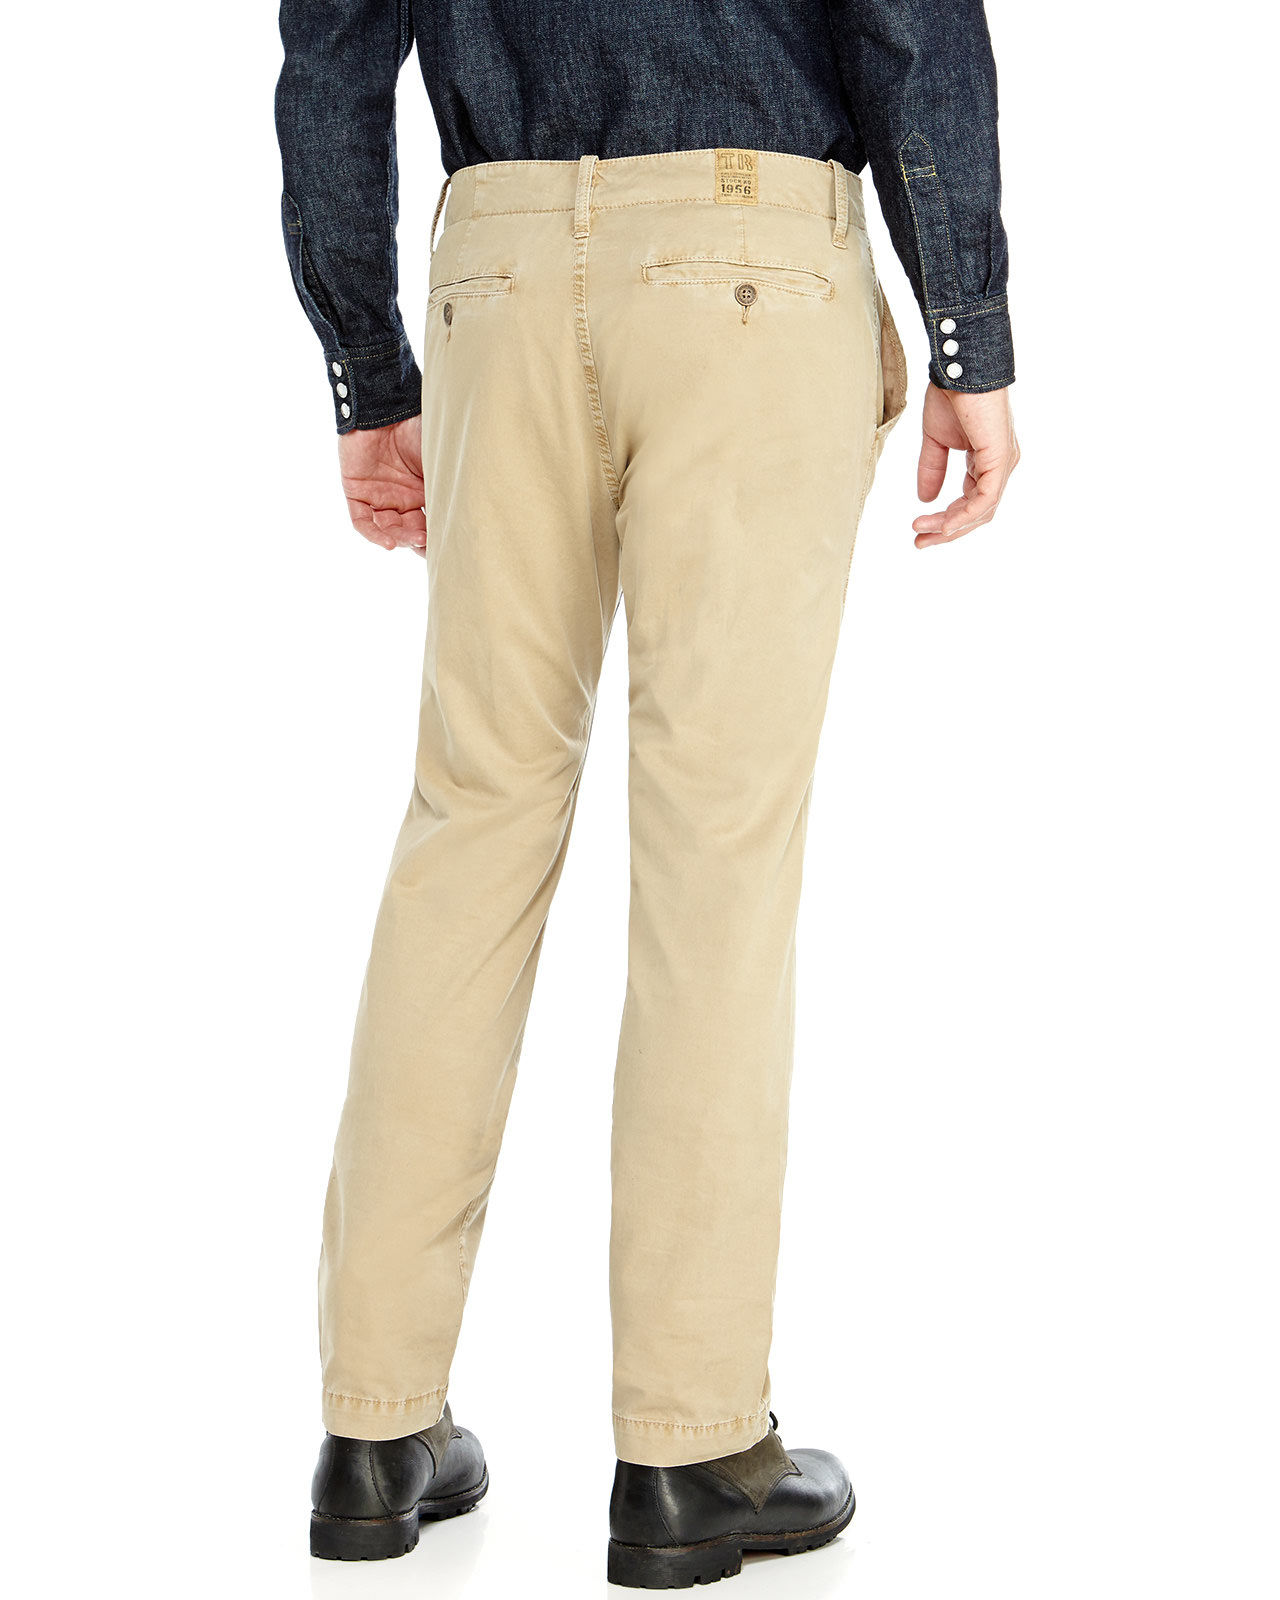 d724253a1 True Religion Utility Chino Pants in Natural for Men - Lyst